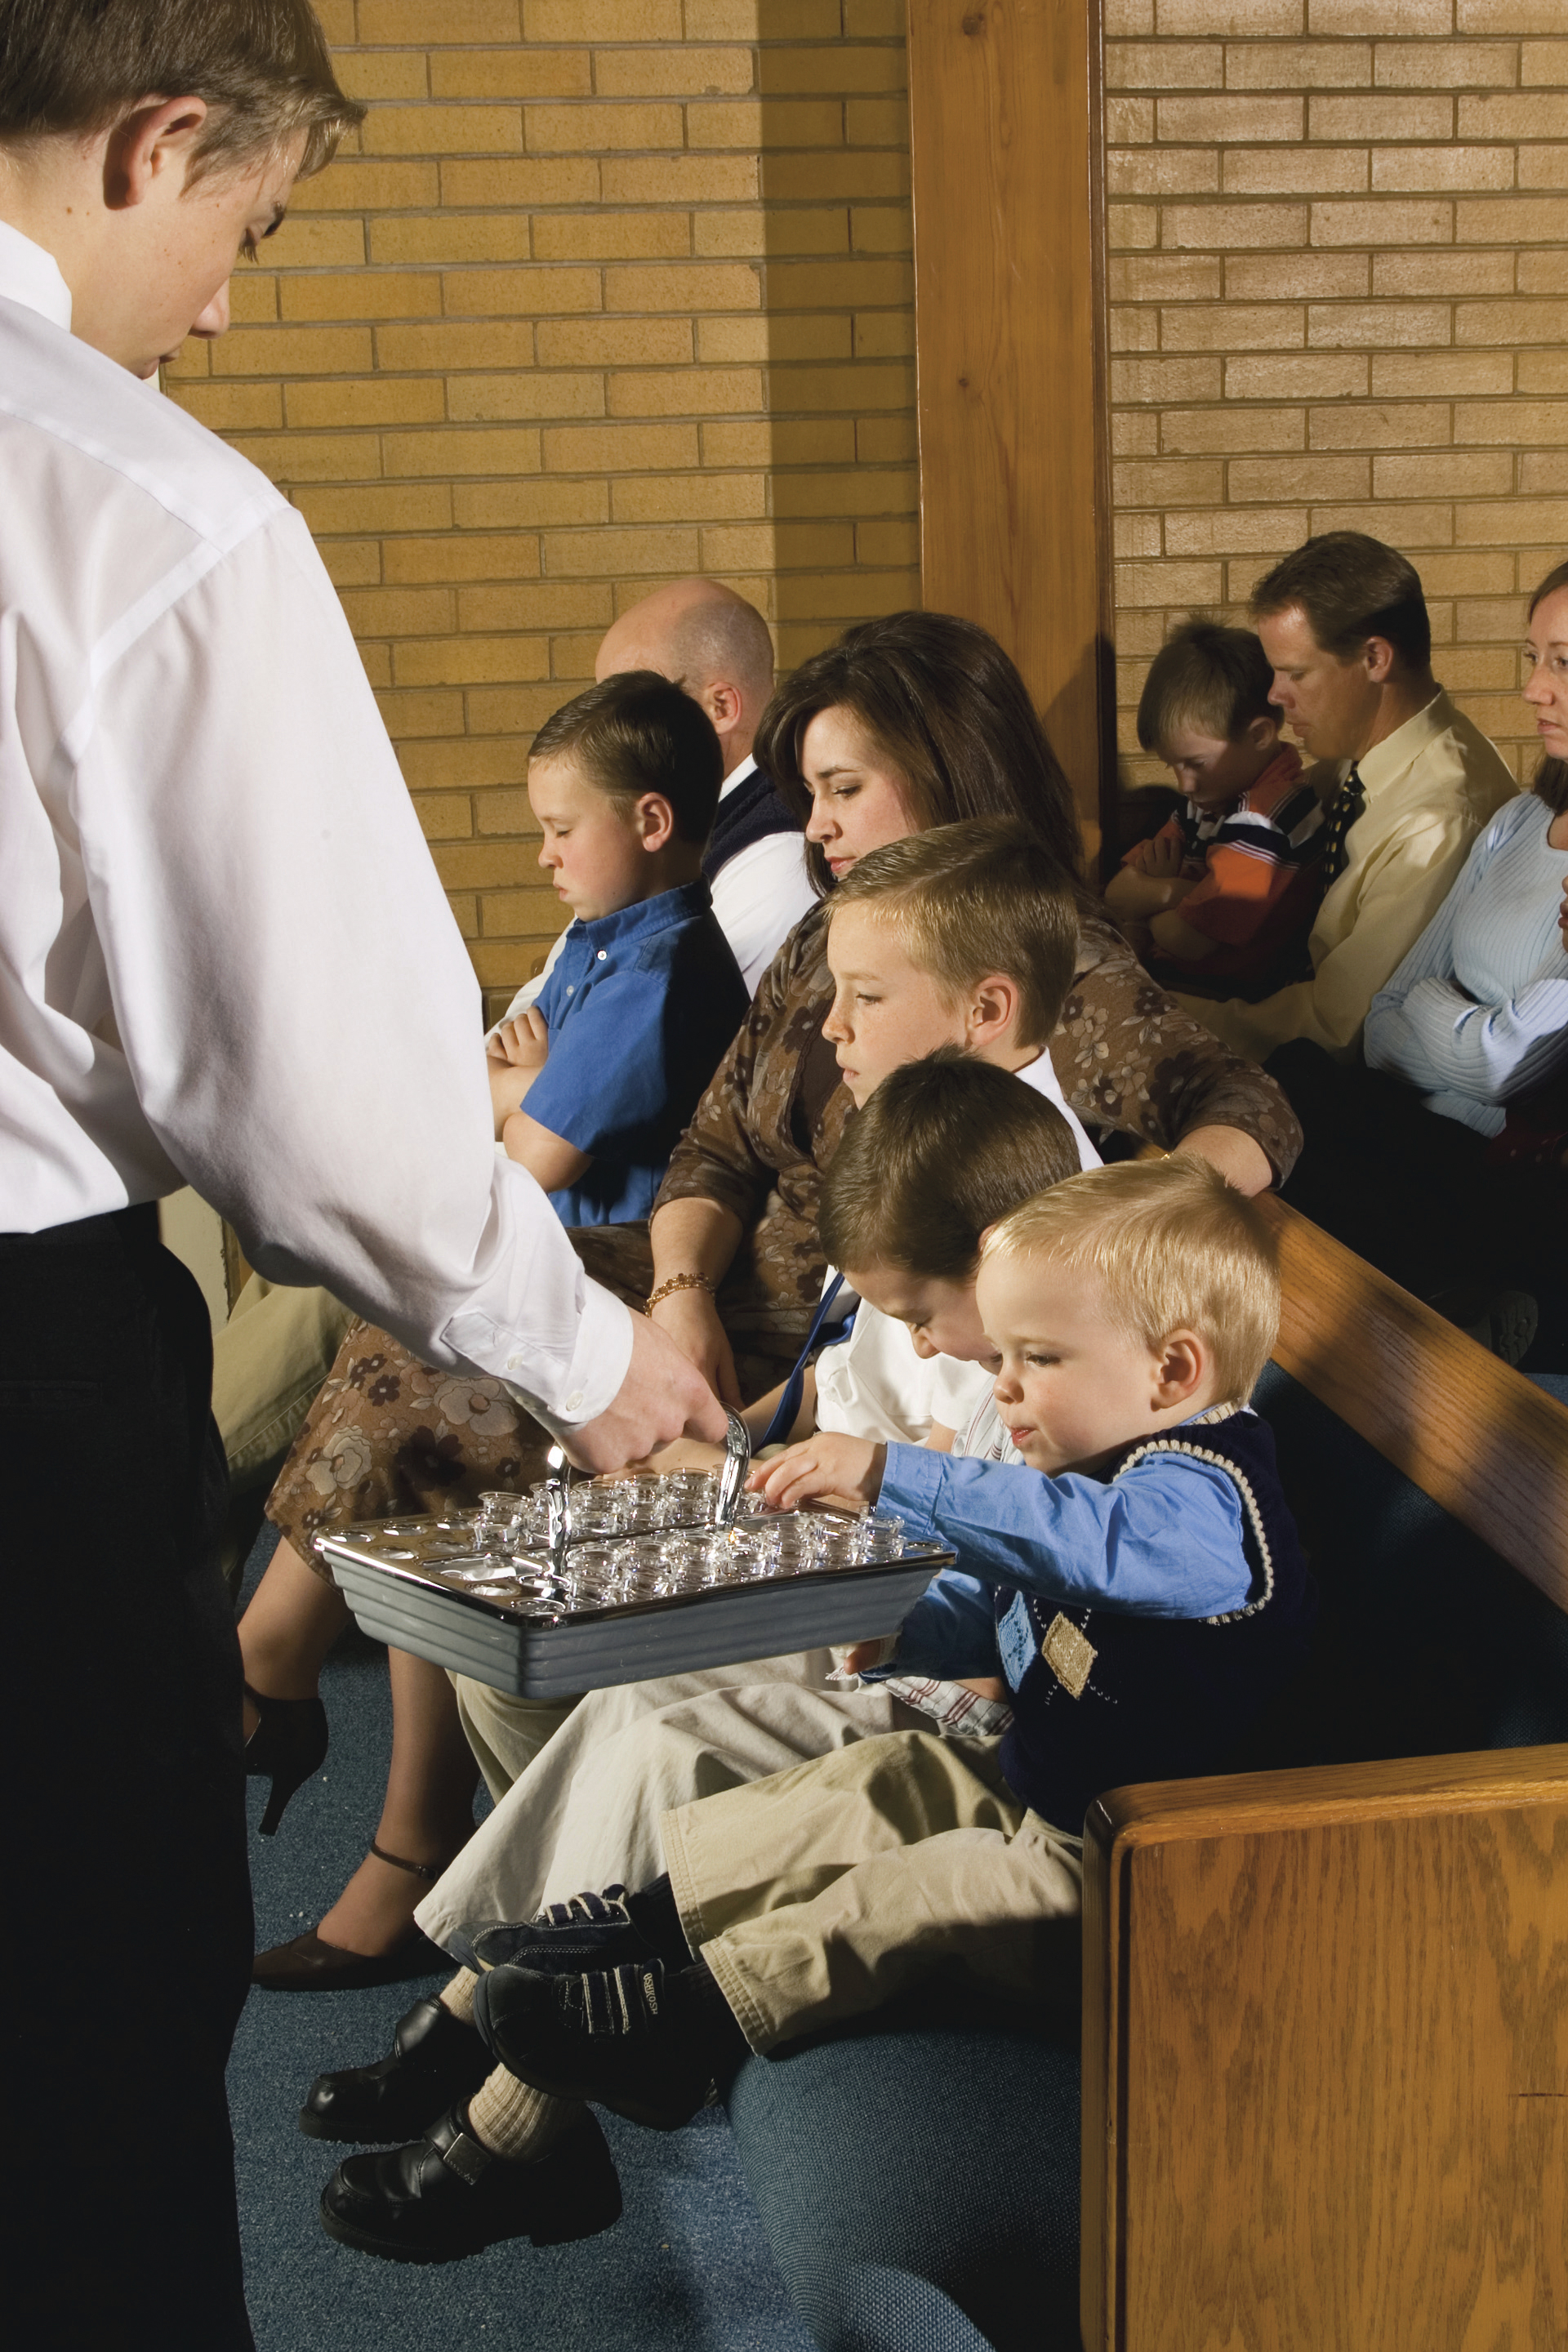 A young child reaches out to take a sacrament cup.